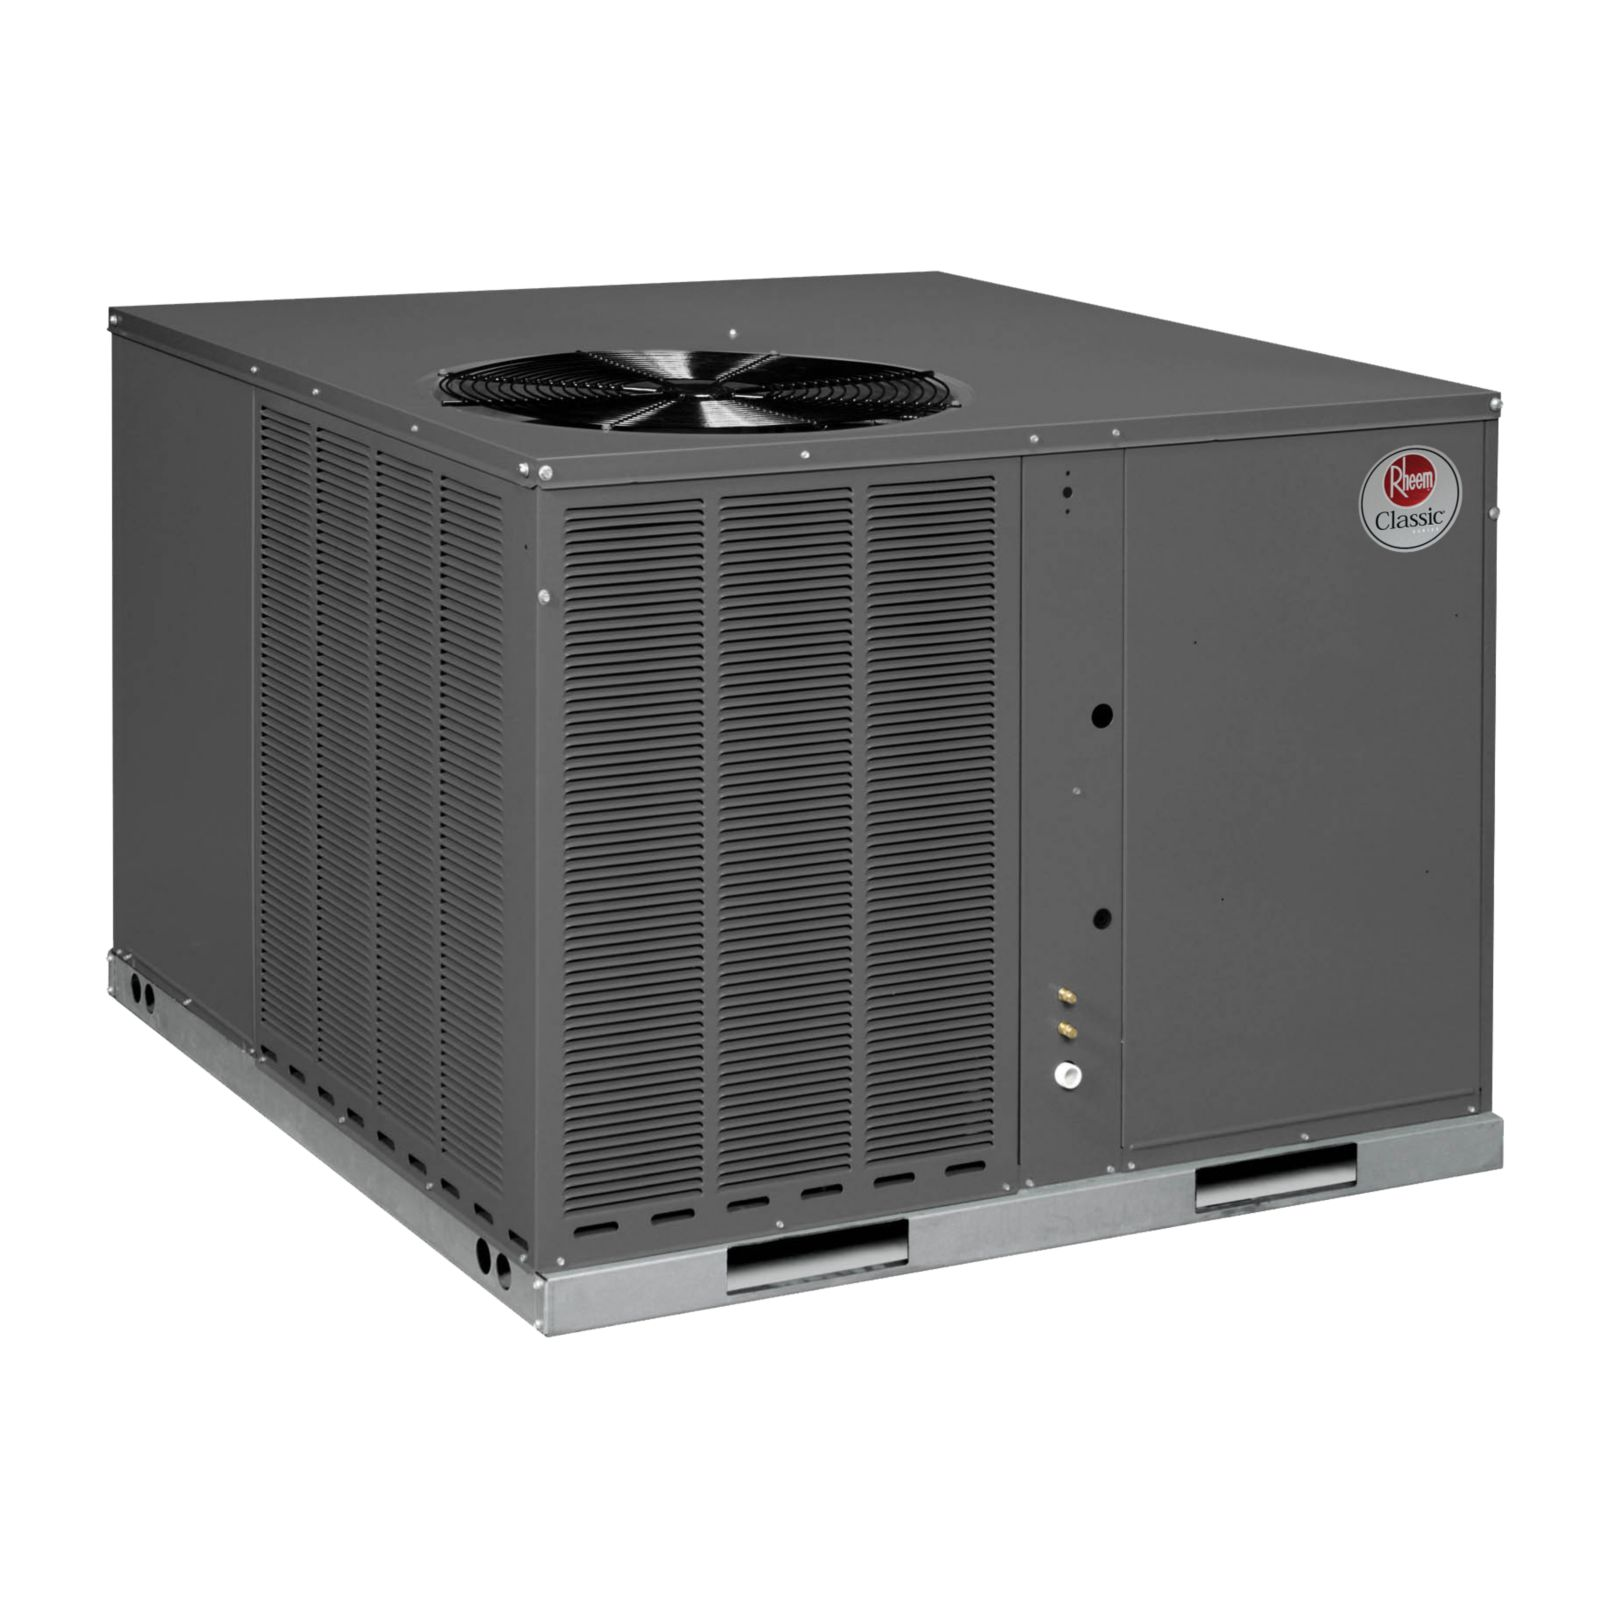 Rheem RQPL-B025JK000 - 2 Ton, 14 SEER, R410A, Packaged Heat Pump, 208-230 V, 1 Ph, 60 Hz